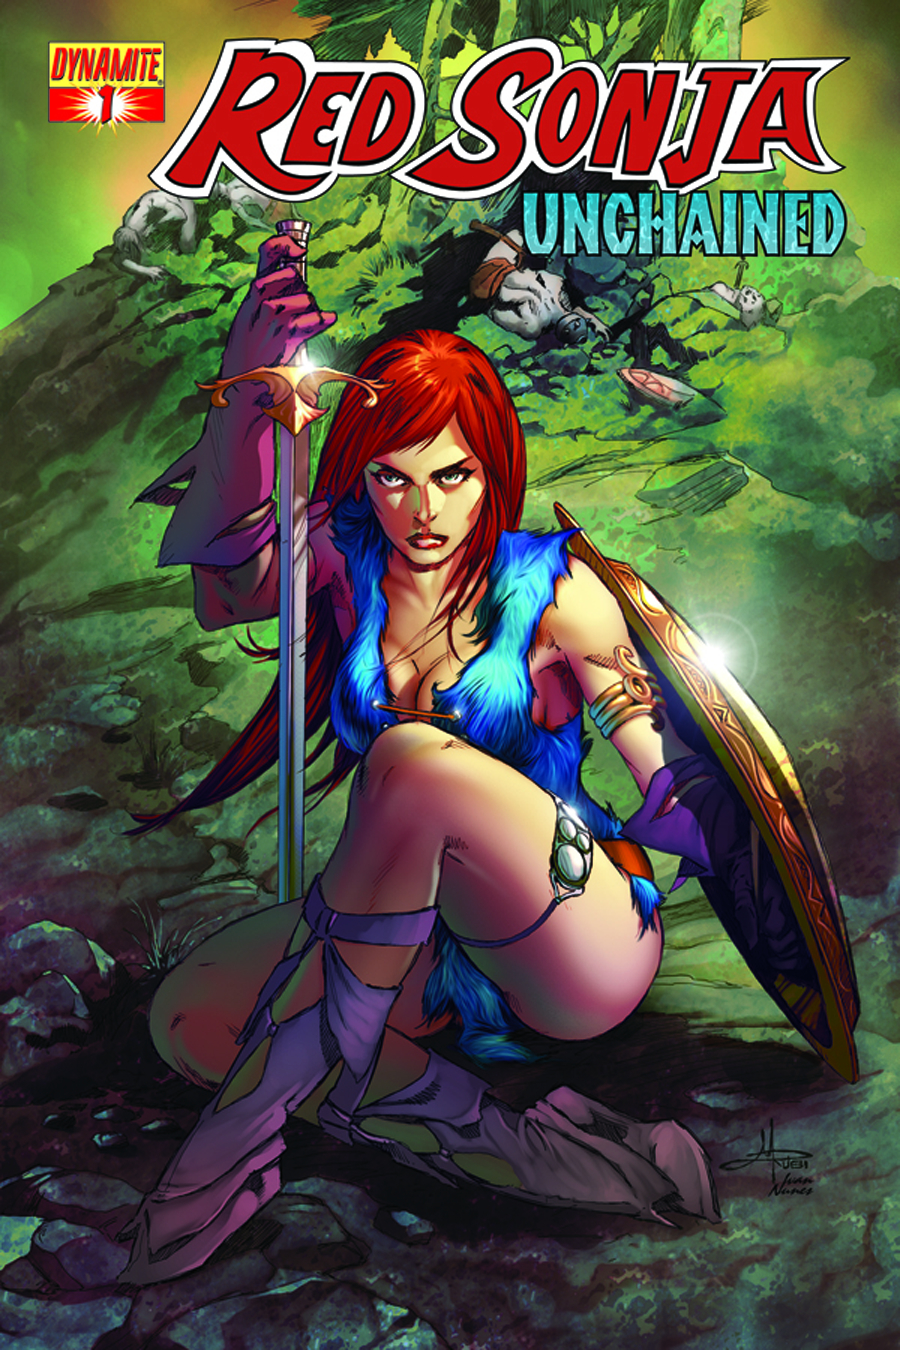 RED SONJA UNCHAINED #1